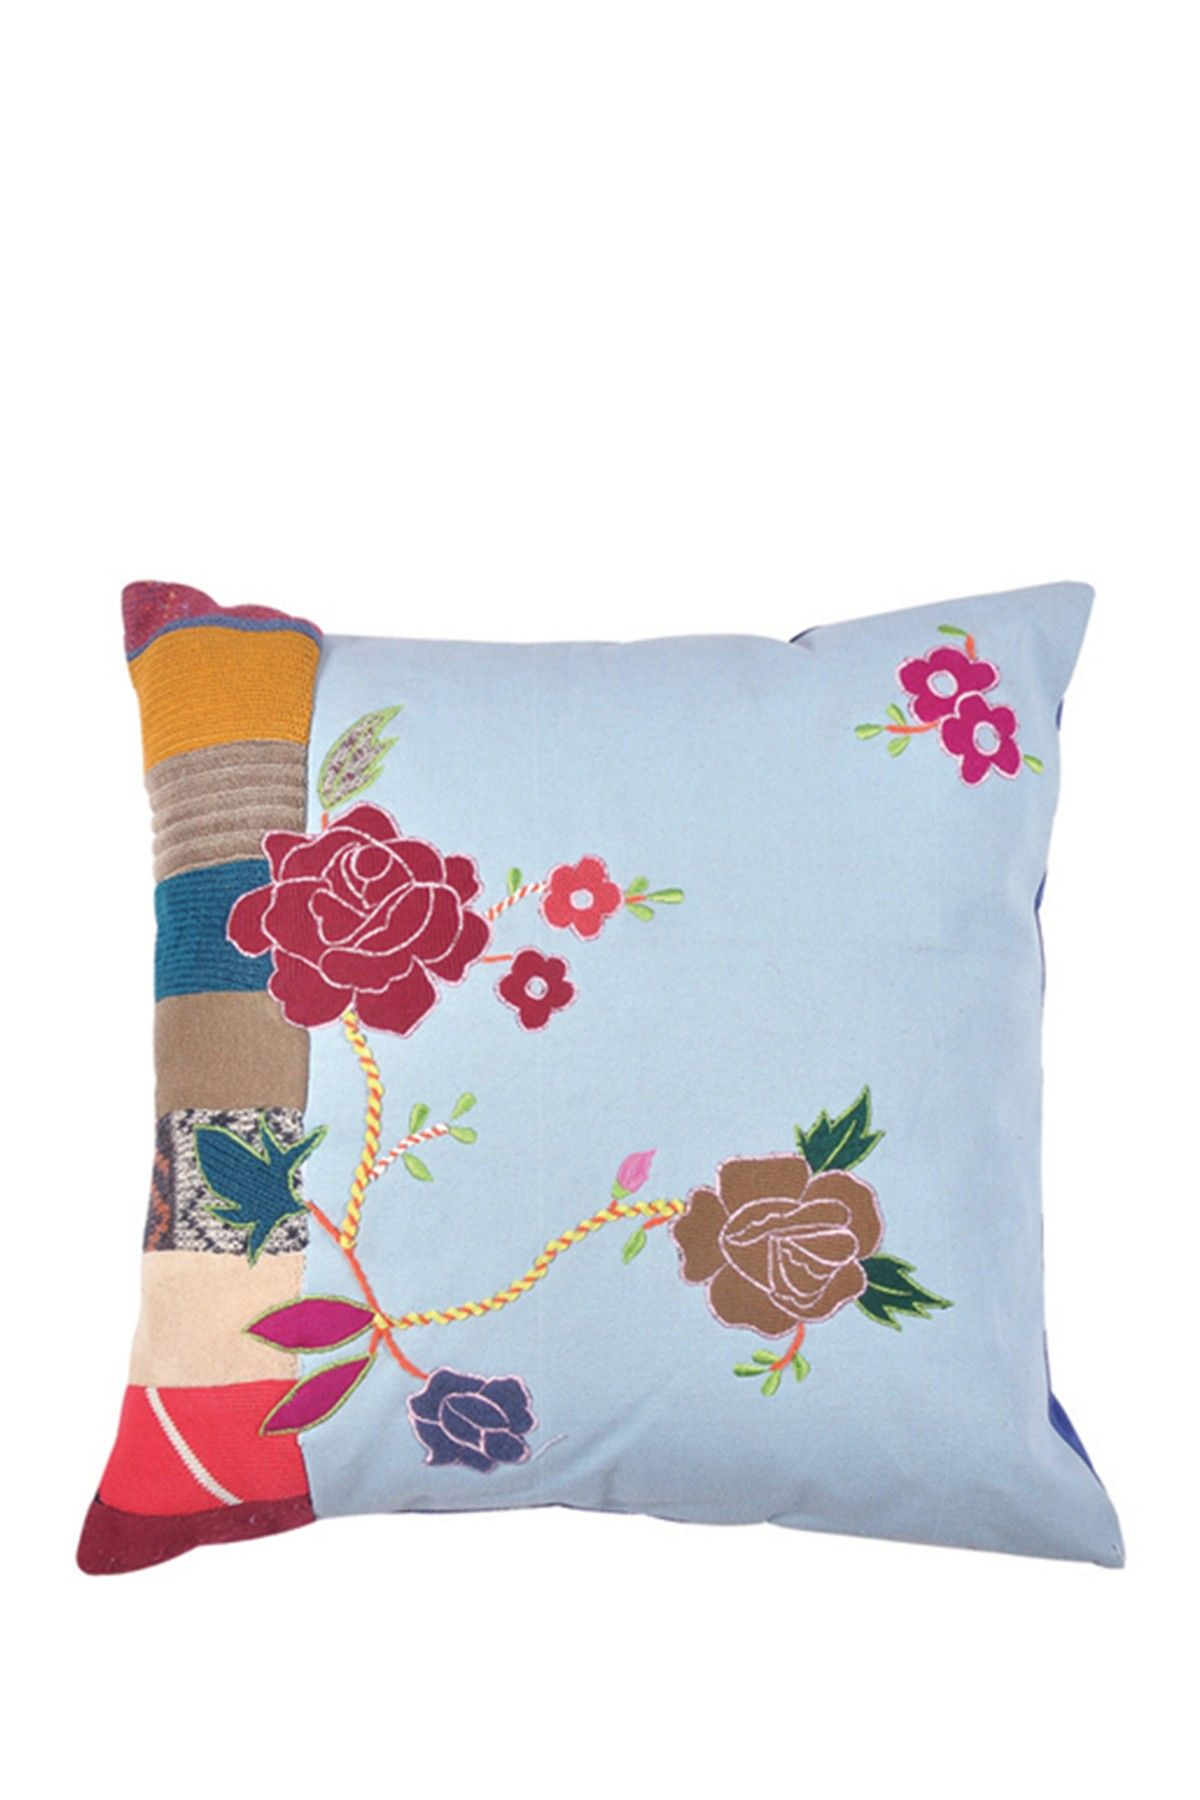 Floral pillow multi by karma living on hautelook pillow talk